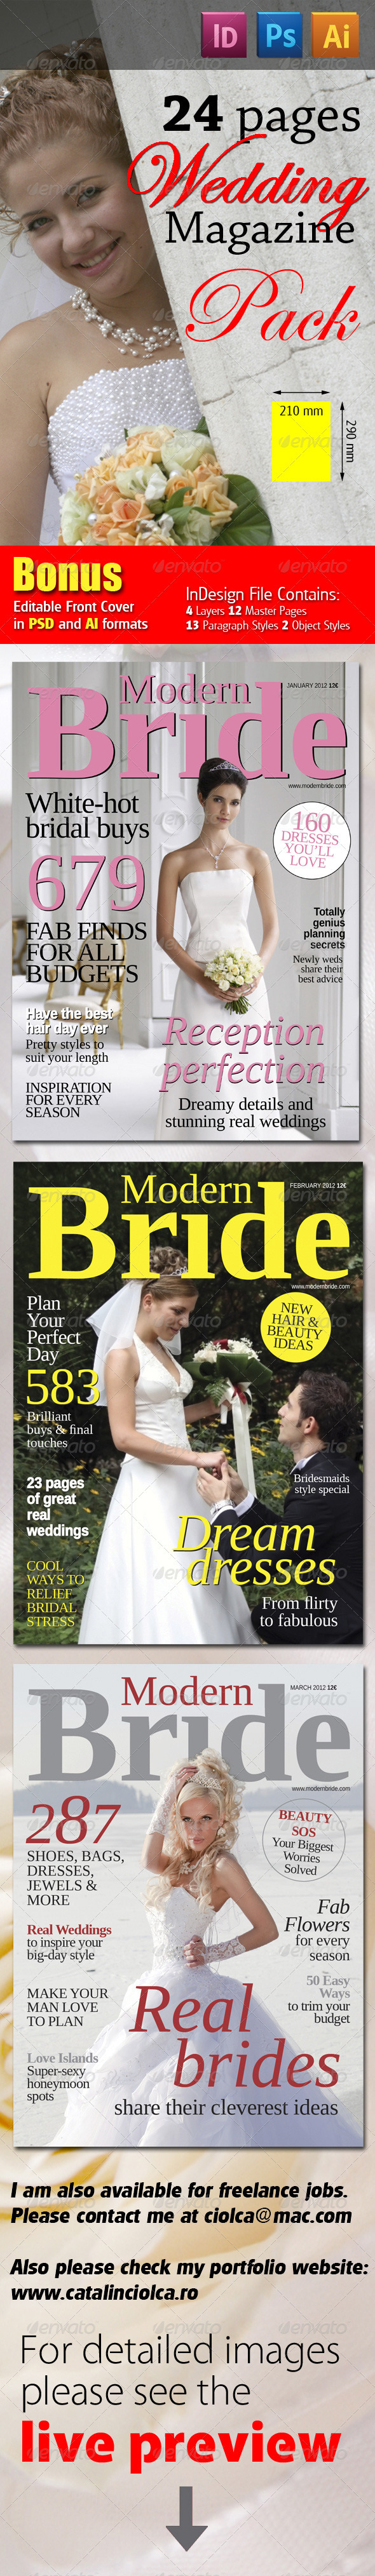 68 Pages Wedding Magazine Pack - Magazines Print Templates